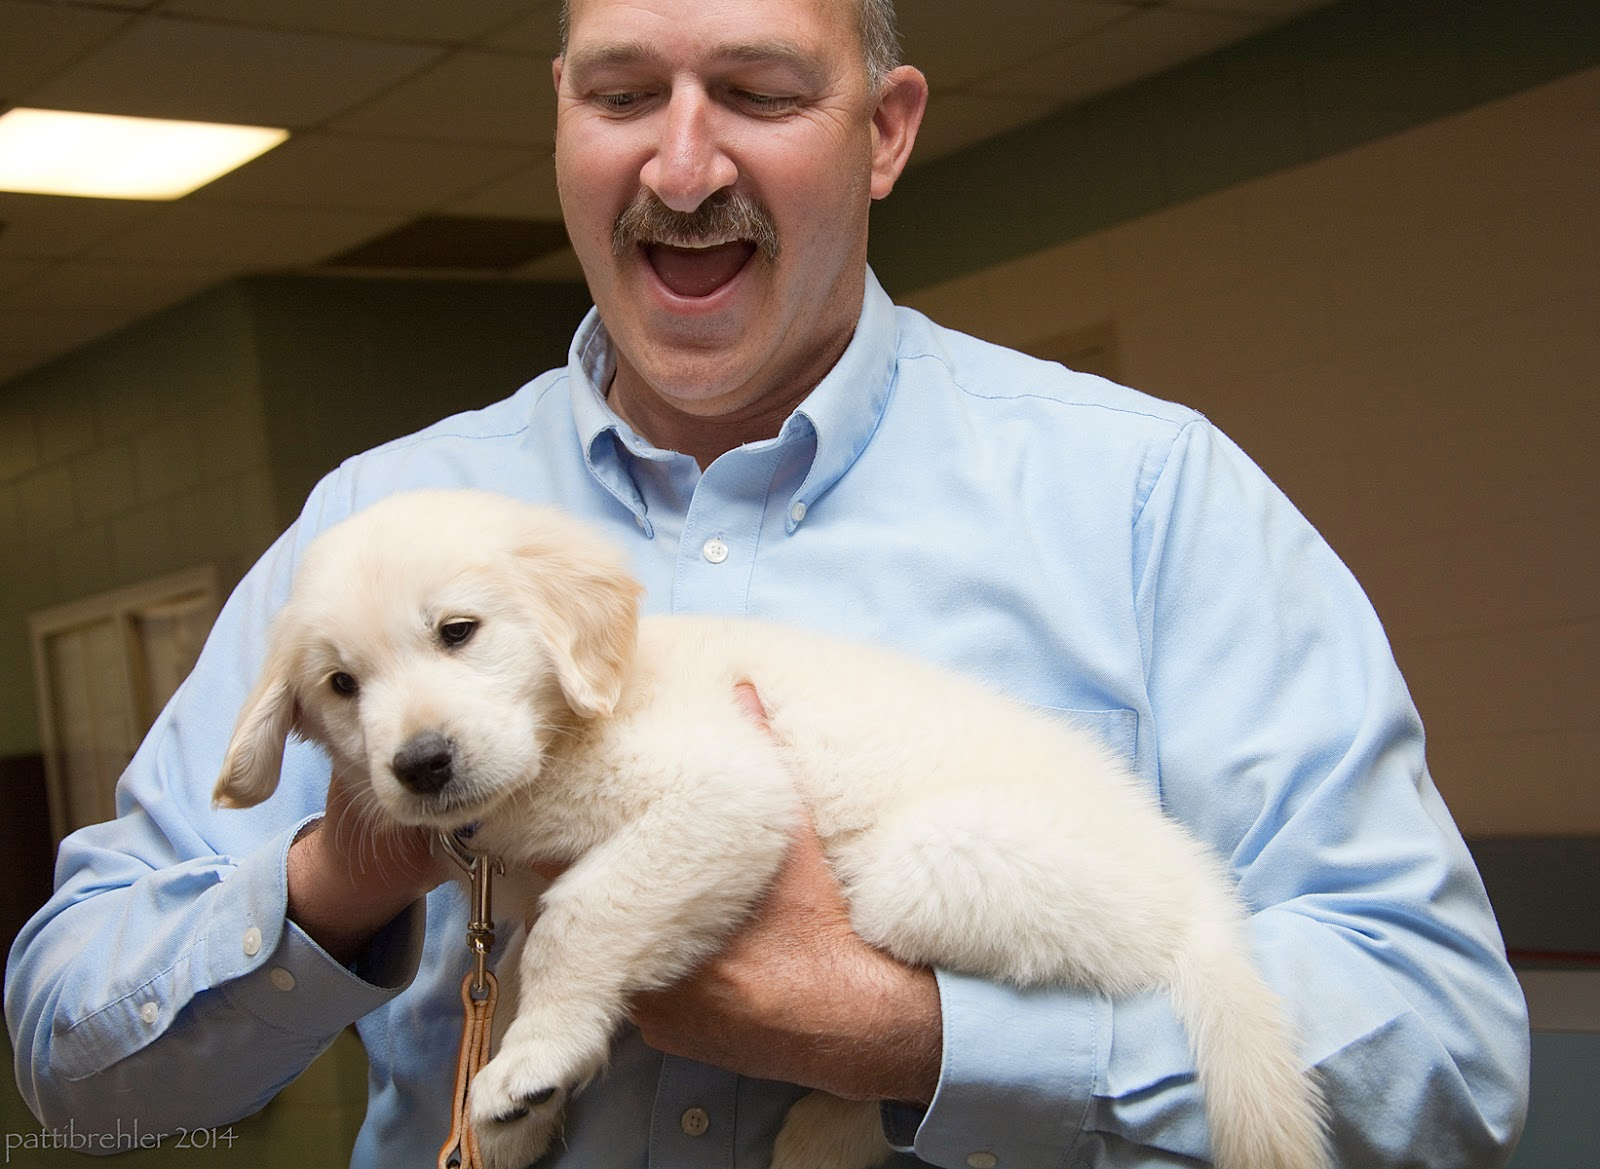 A man in a light blue shirt is holding the fuzzy puppy in his arms. He is looking down at the puppy and has a surprised smile on his face. He has a mustache.  The puppy is cradled in his left arm and his right hand is petting the puppy's neck.